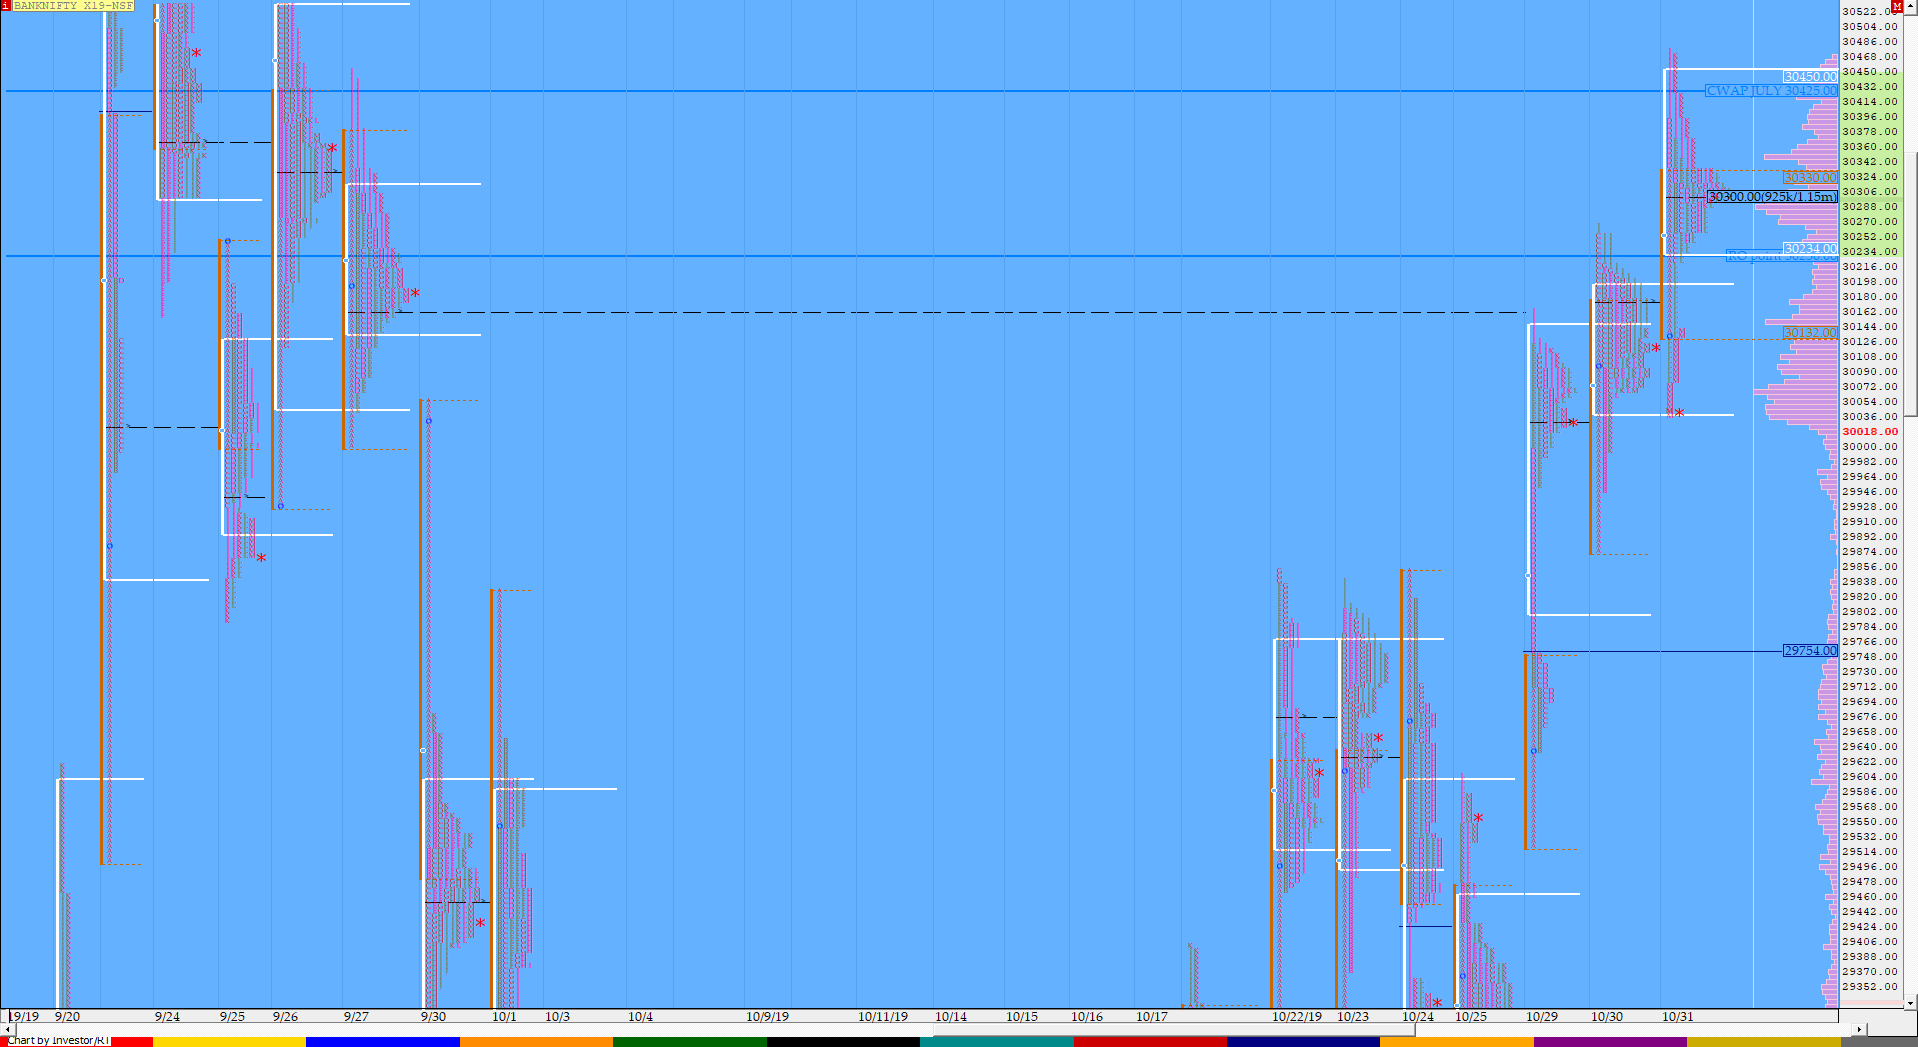 Market Profile Analysis dated 31st October 3